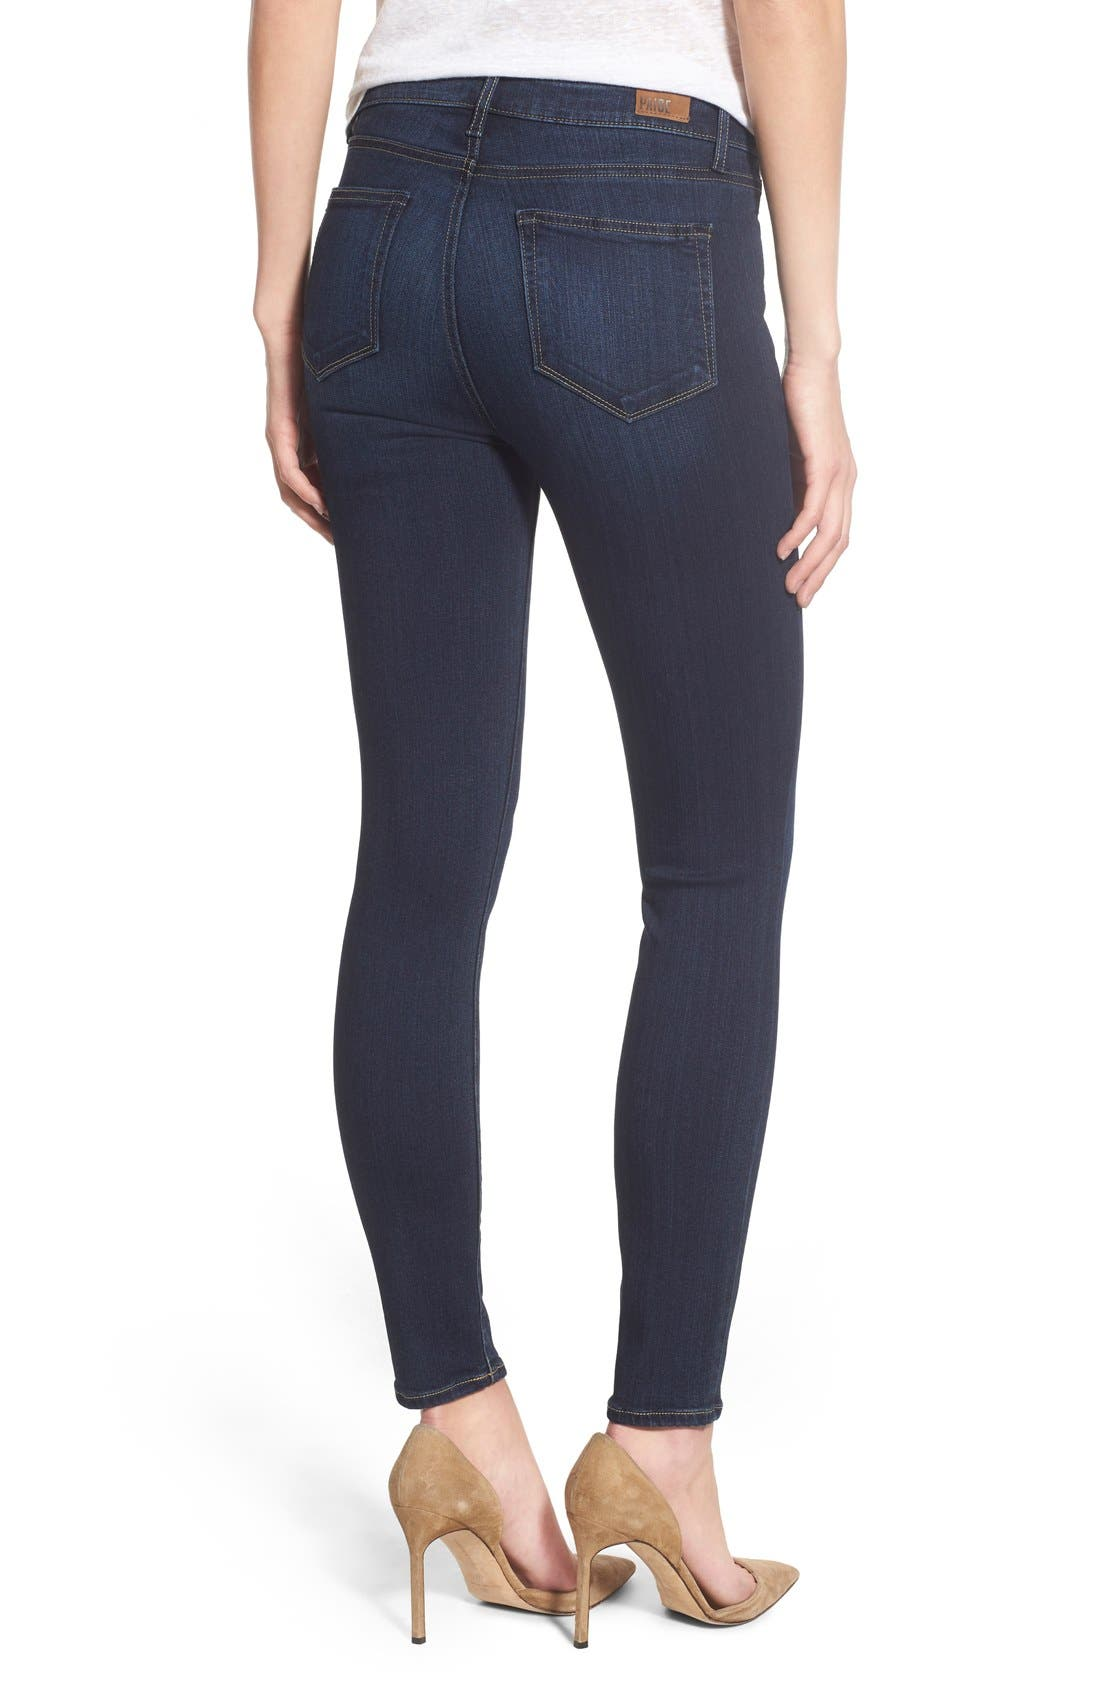 Transcend - Hoxton High Waist Ankle Ultra Skinny Jeans,                             Alternate thumbnail 2, color,                             Hartmann